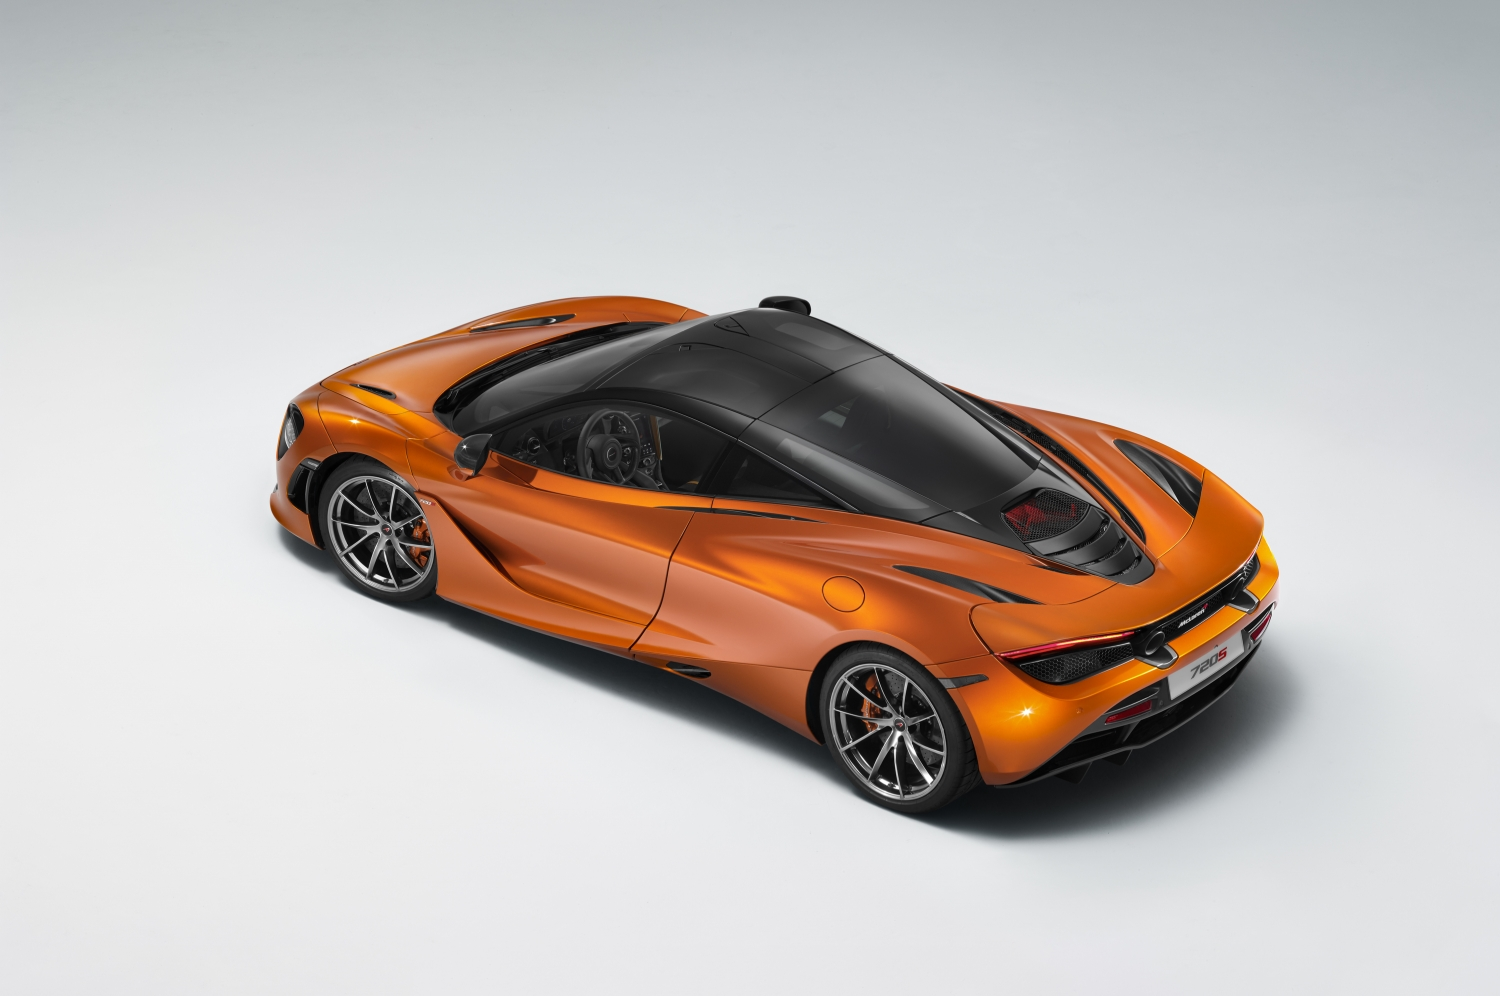 McLaren 720S Dubbed Most Beautiful Supercar of the Year 2017